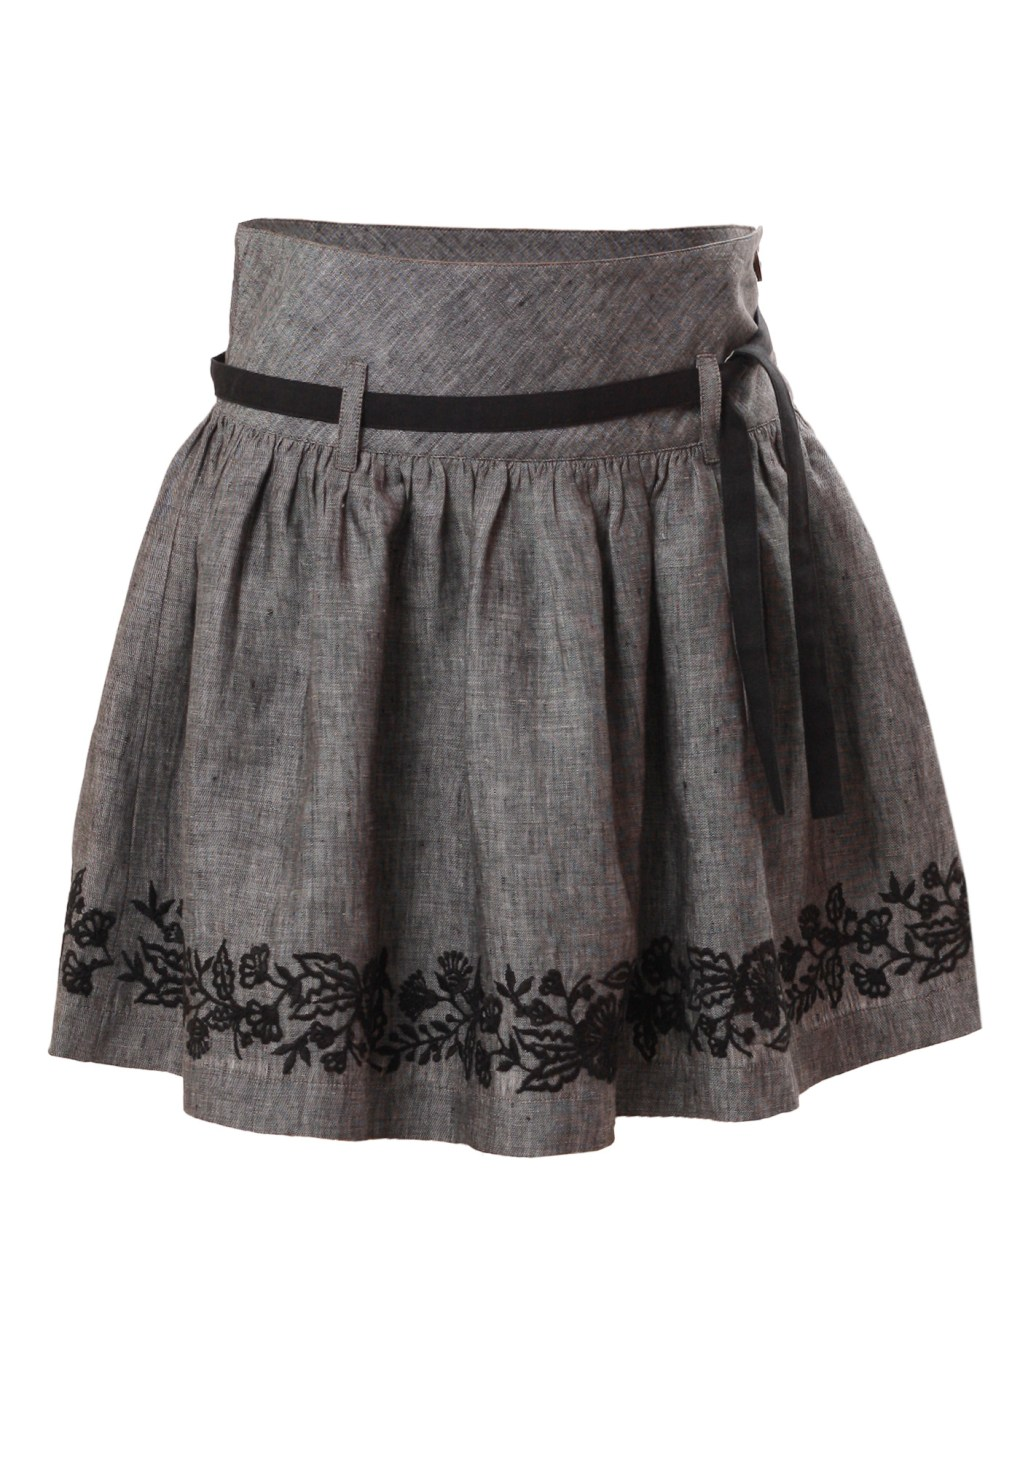 MINC Petite Embroidered Girls Classic Skirt in Grey Linen